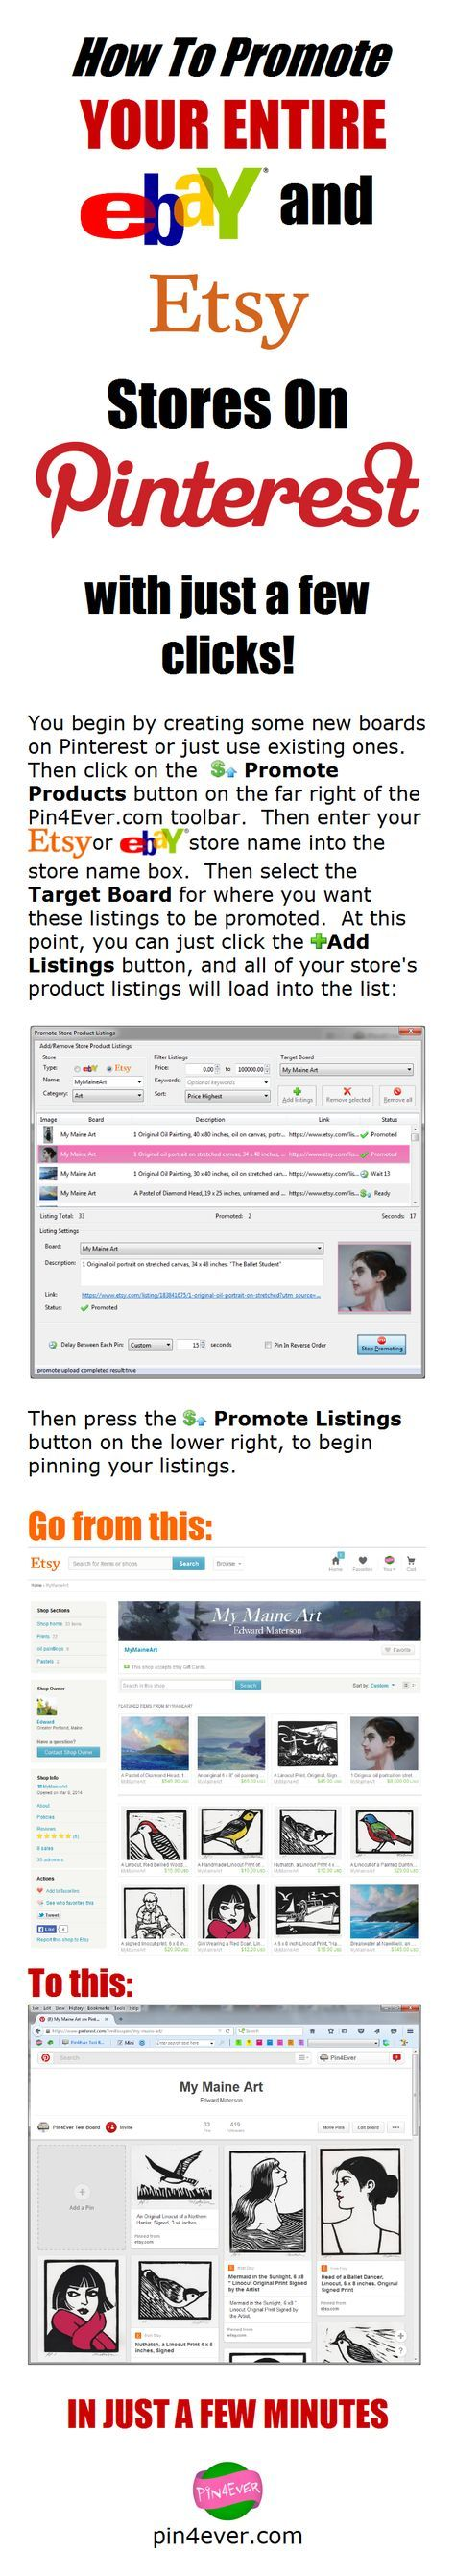 Promote entire eBay and Etsy Stores On Pinterest with just a few clicks!